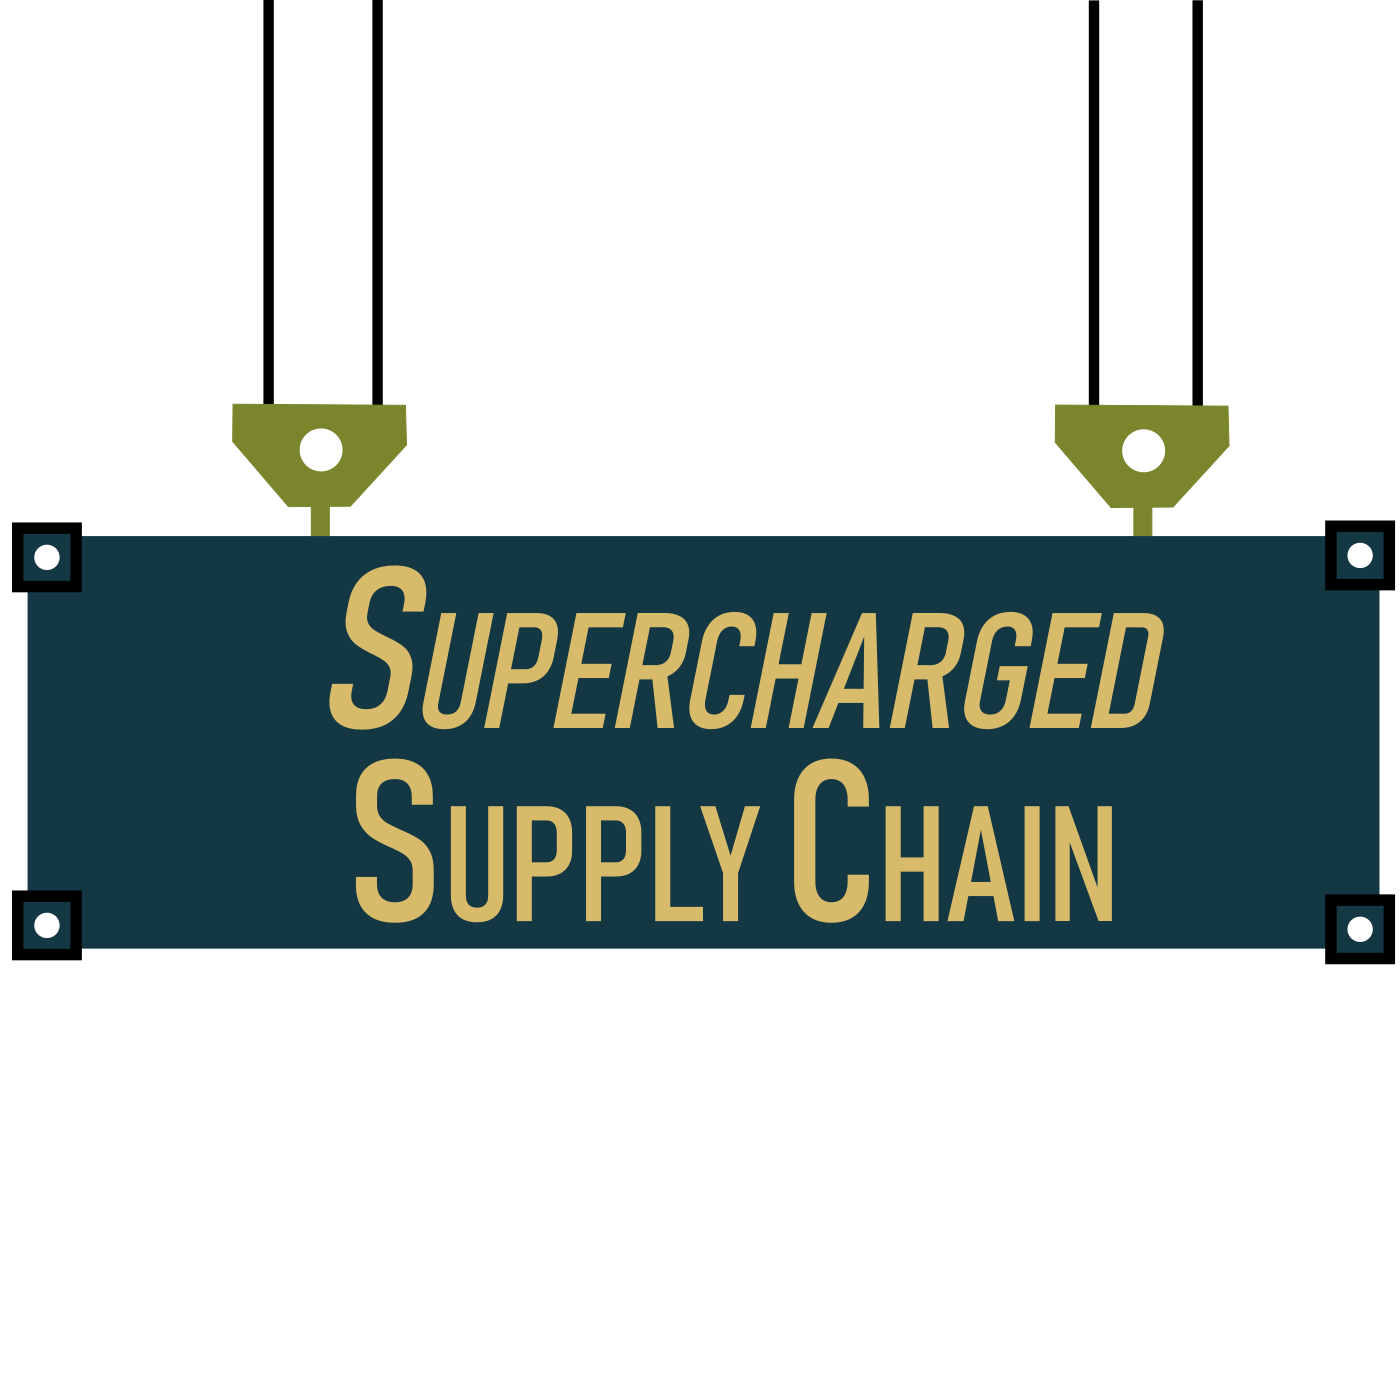 Supercharged Supply Chain